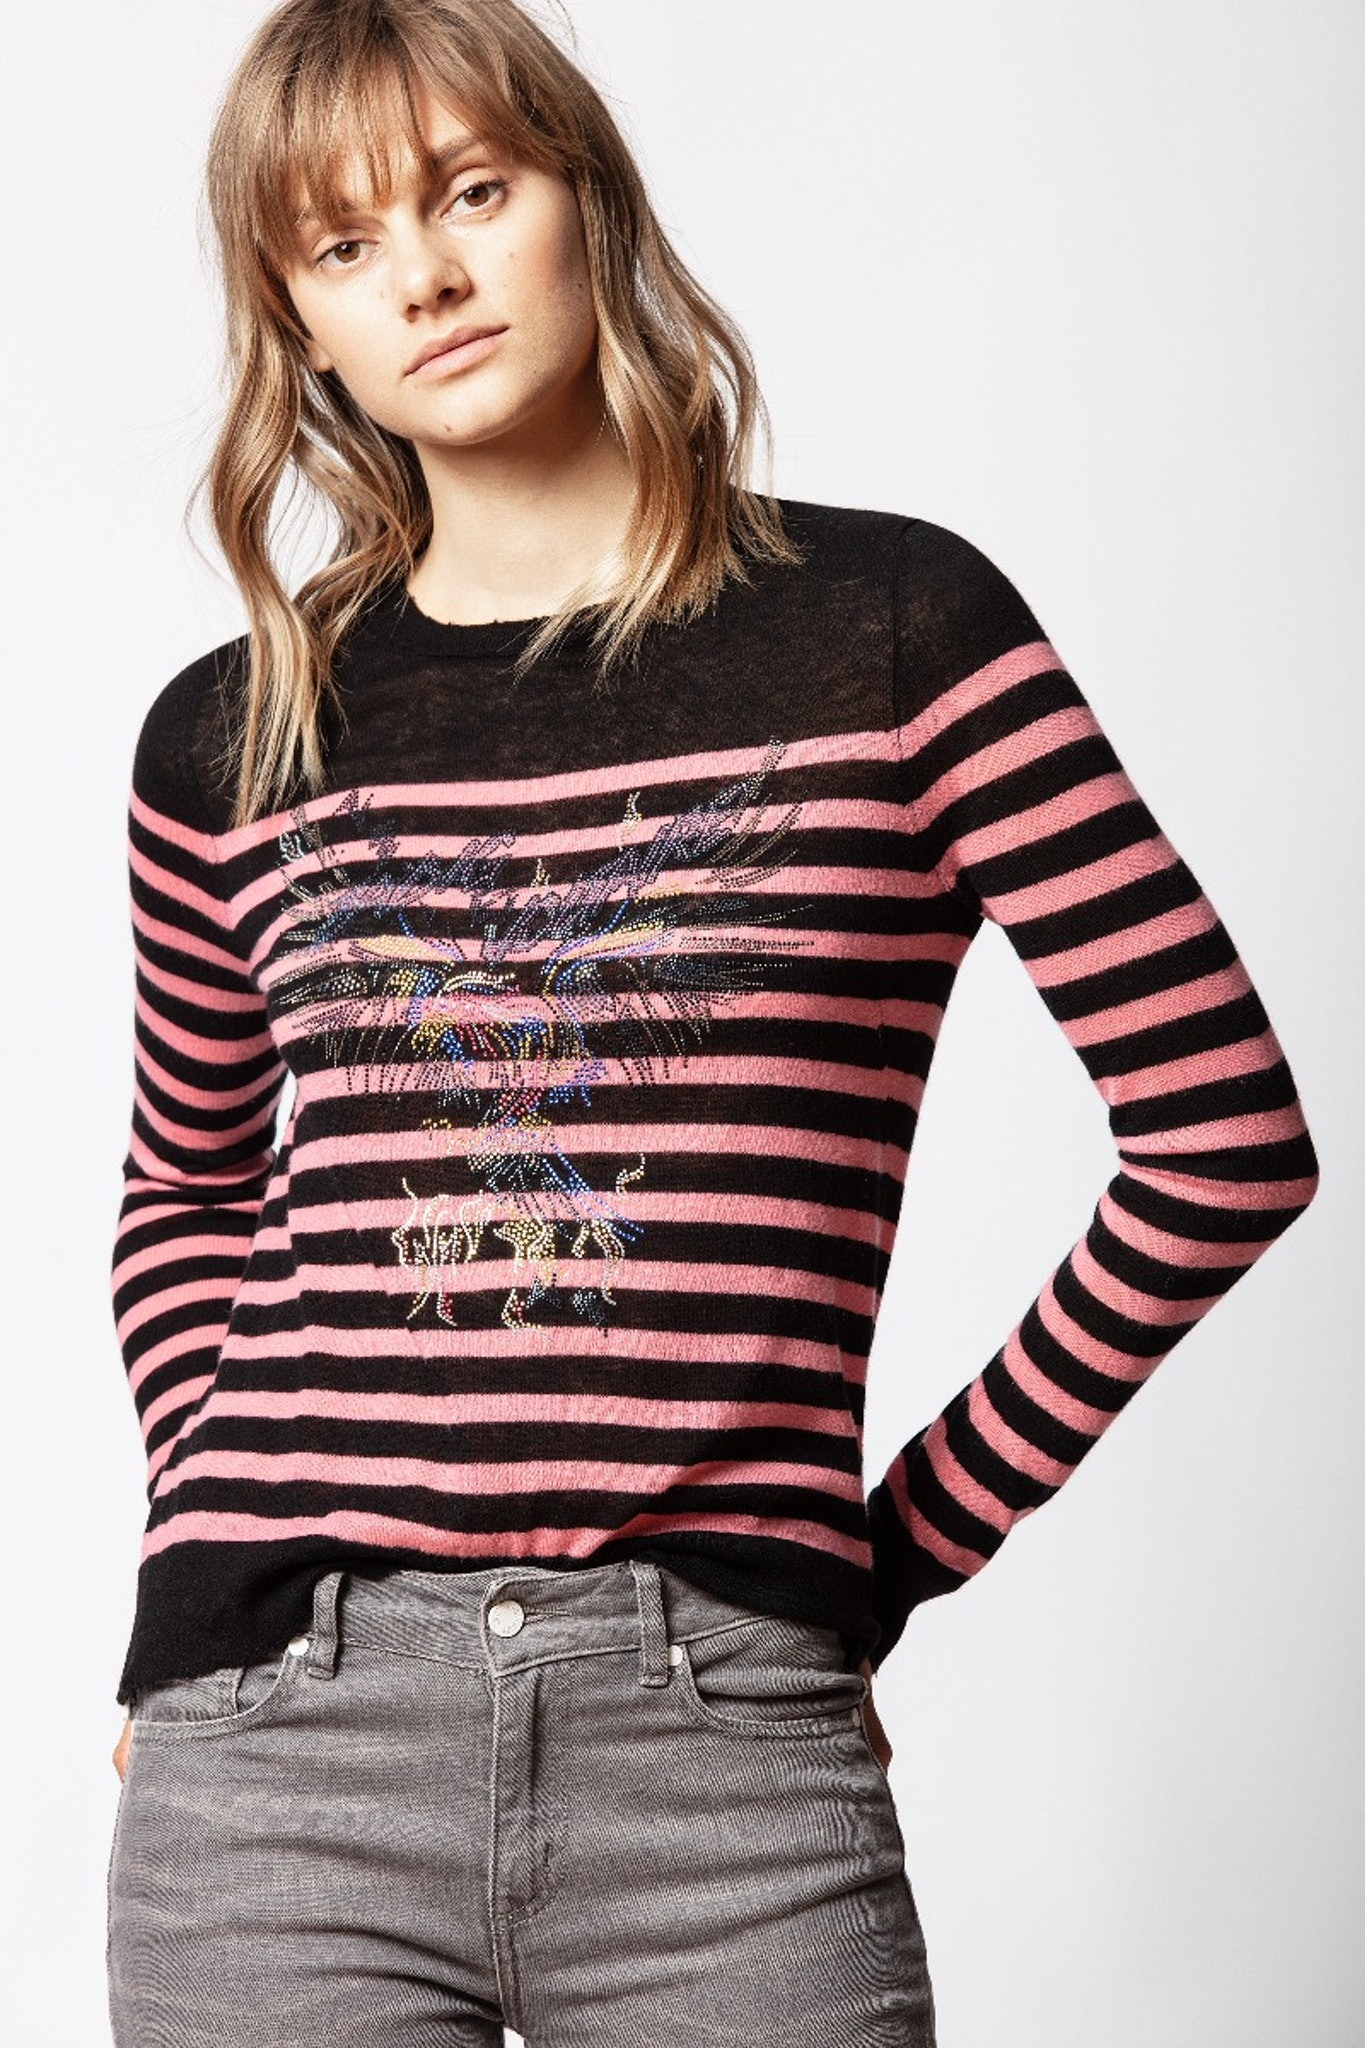 Miss Eagle Cachemire Sweater